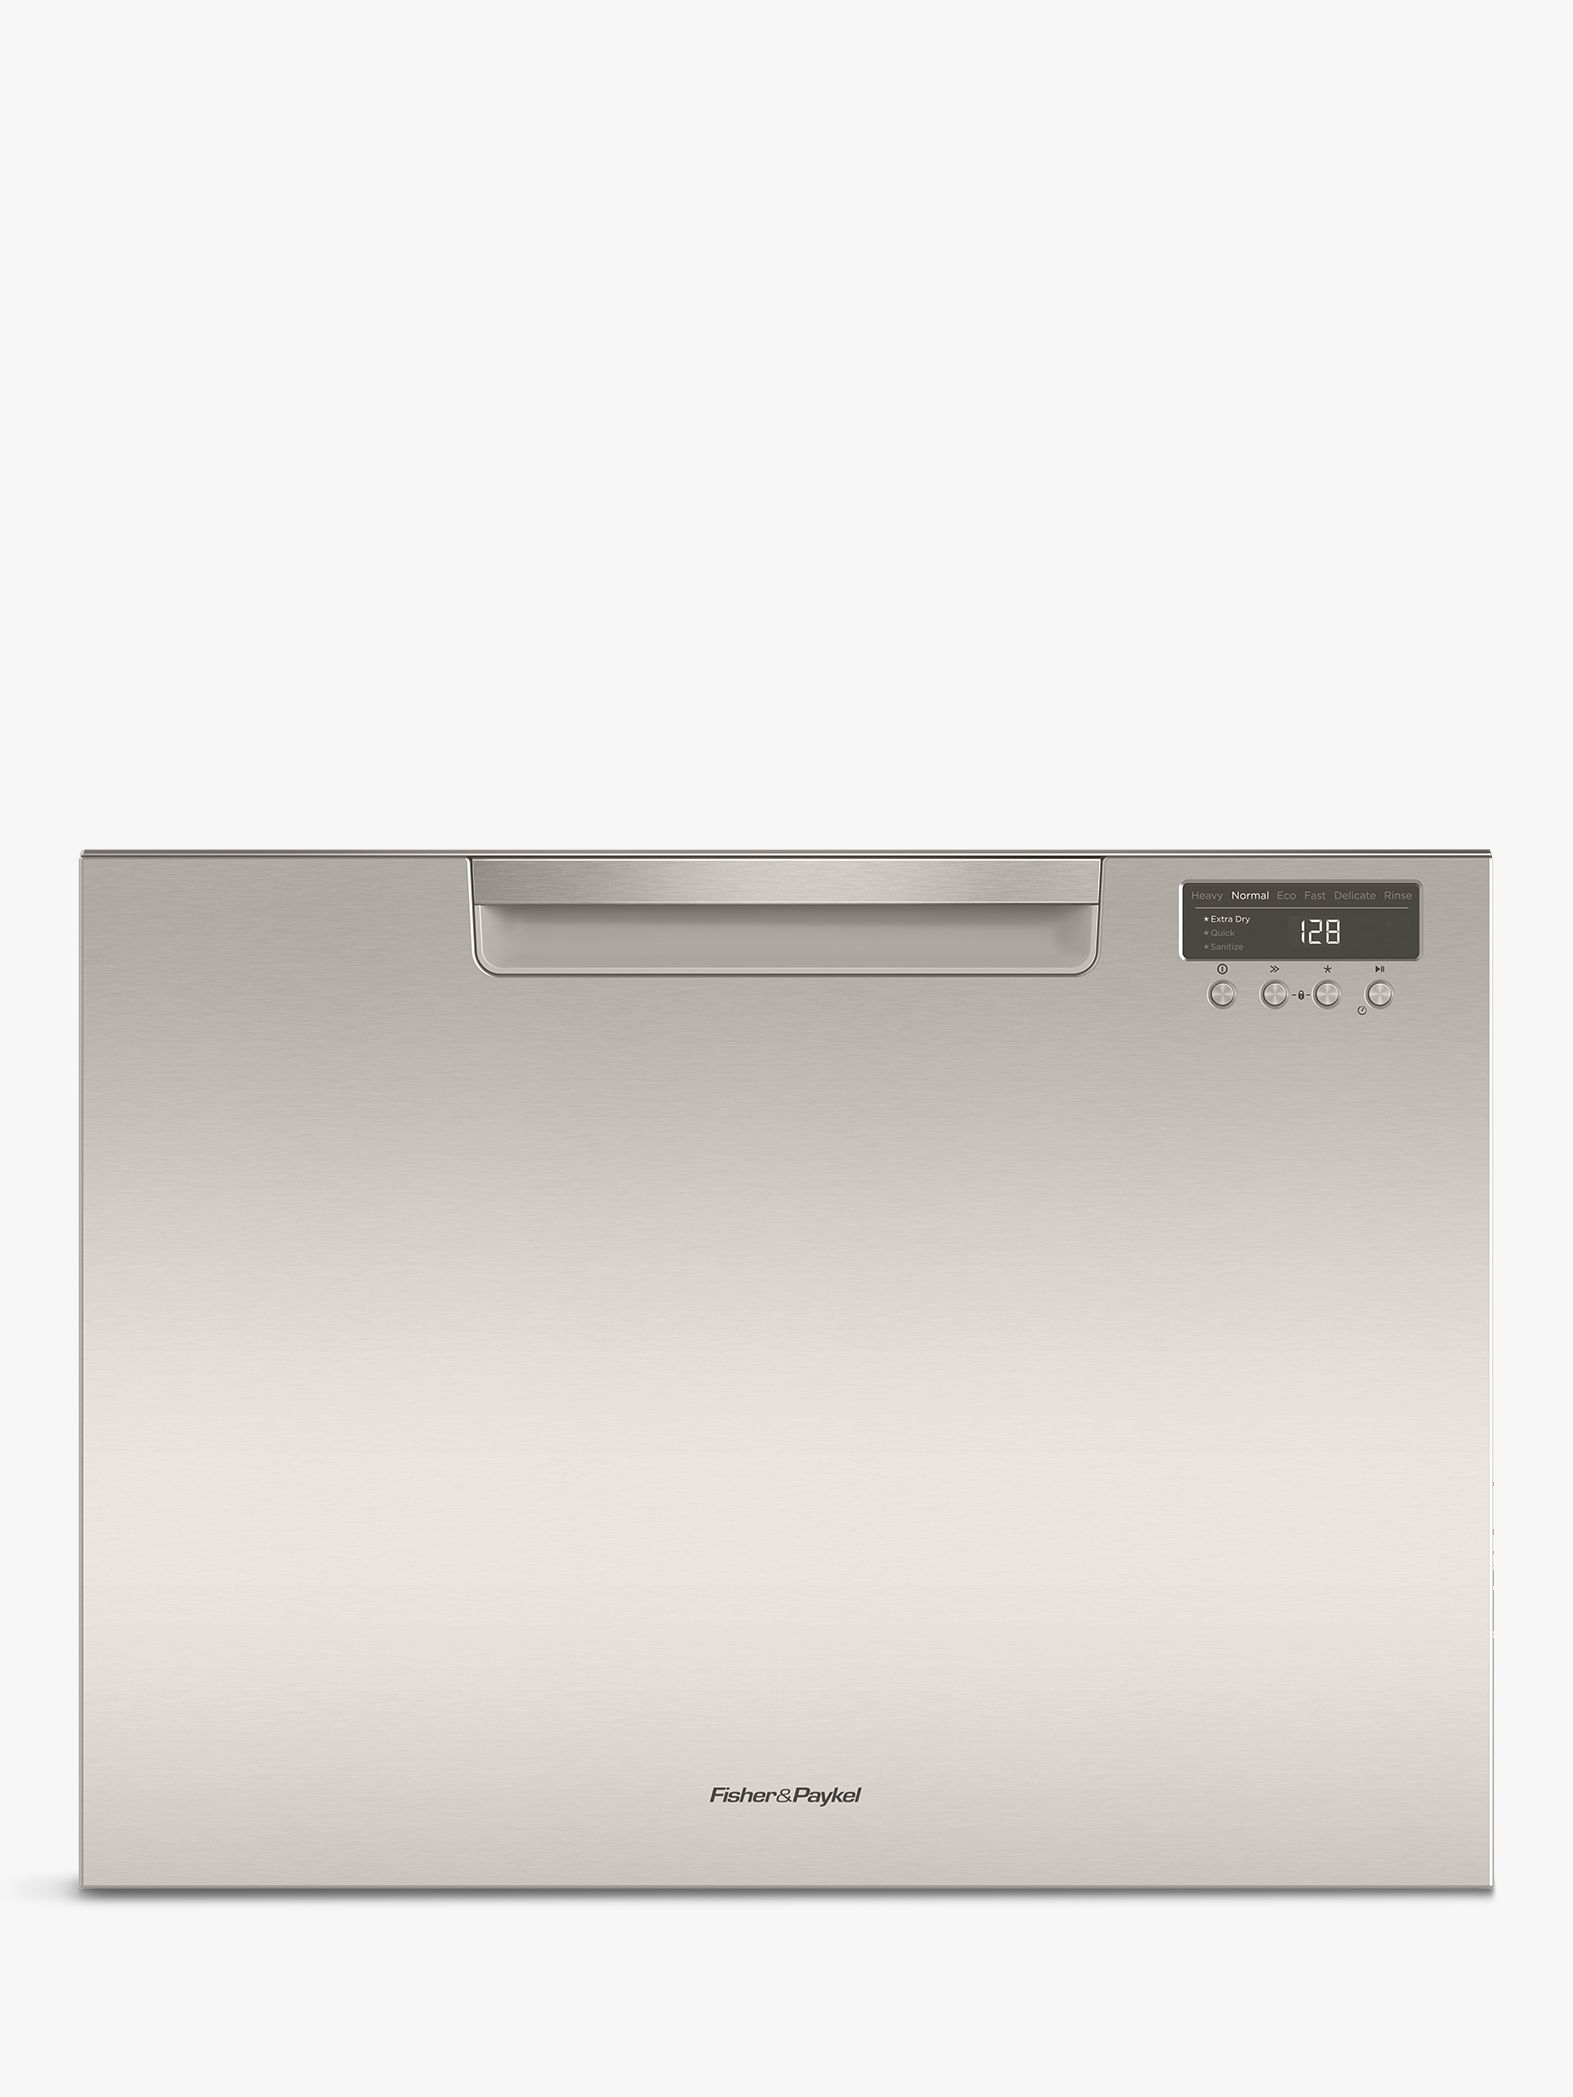 Fisher & Paykel Fisher & Paykel DD60SCTHX9 Single DishDrawer Integrated Dishwasher, Stainless Steel